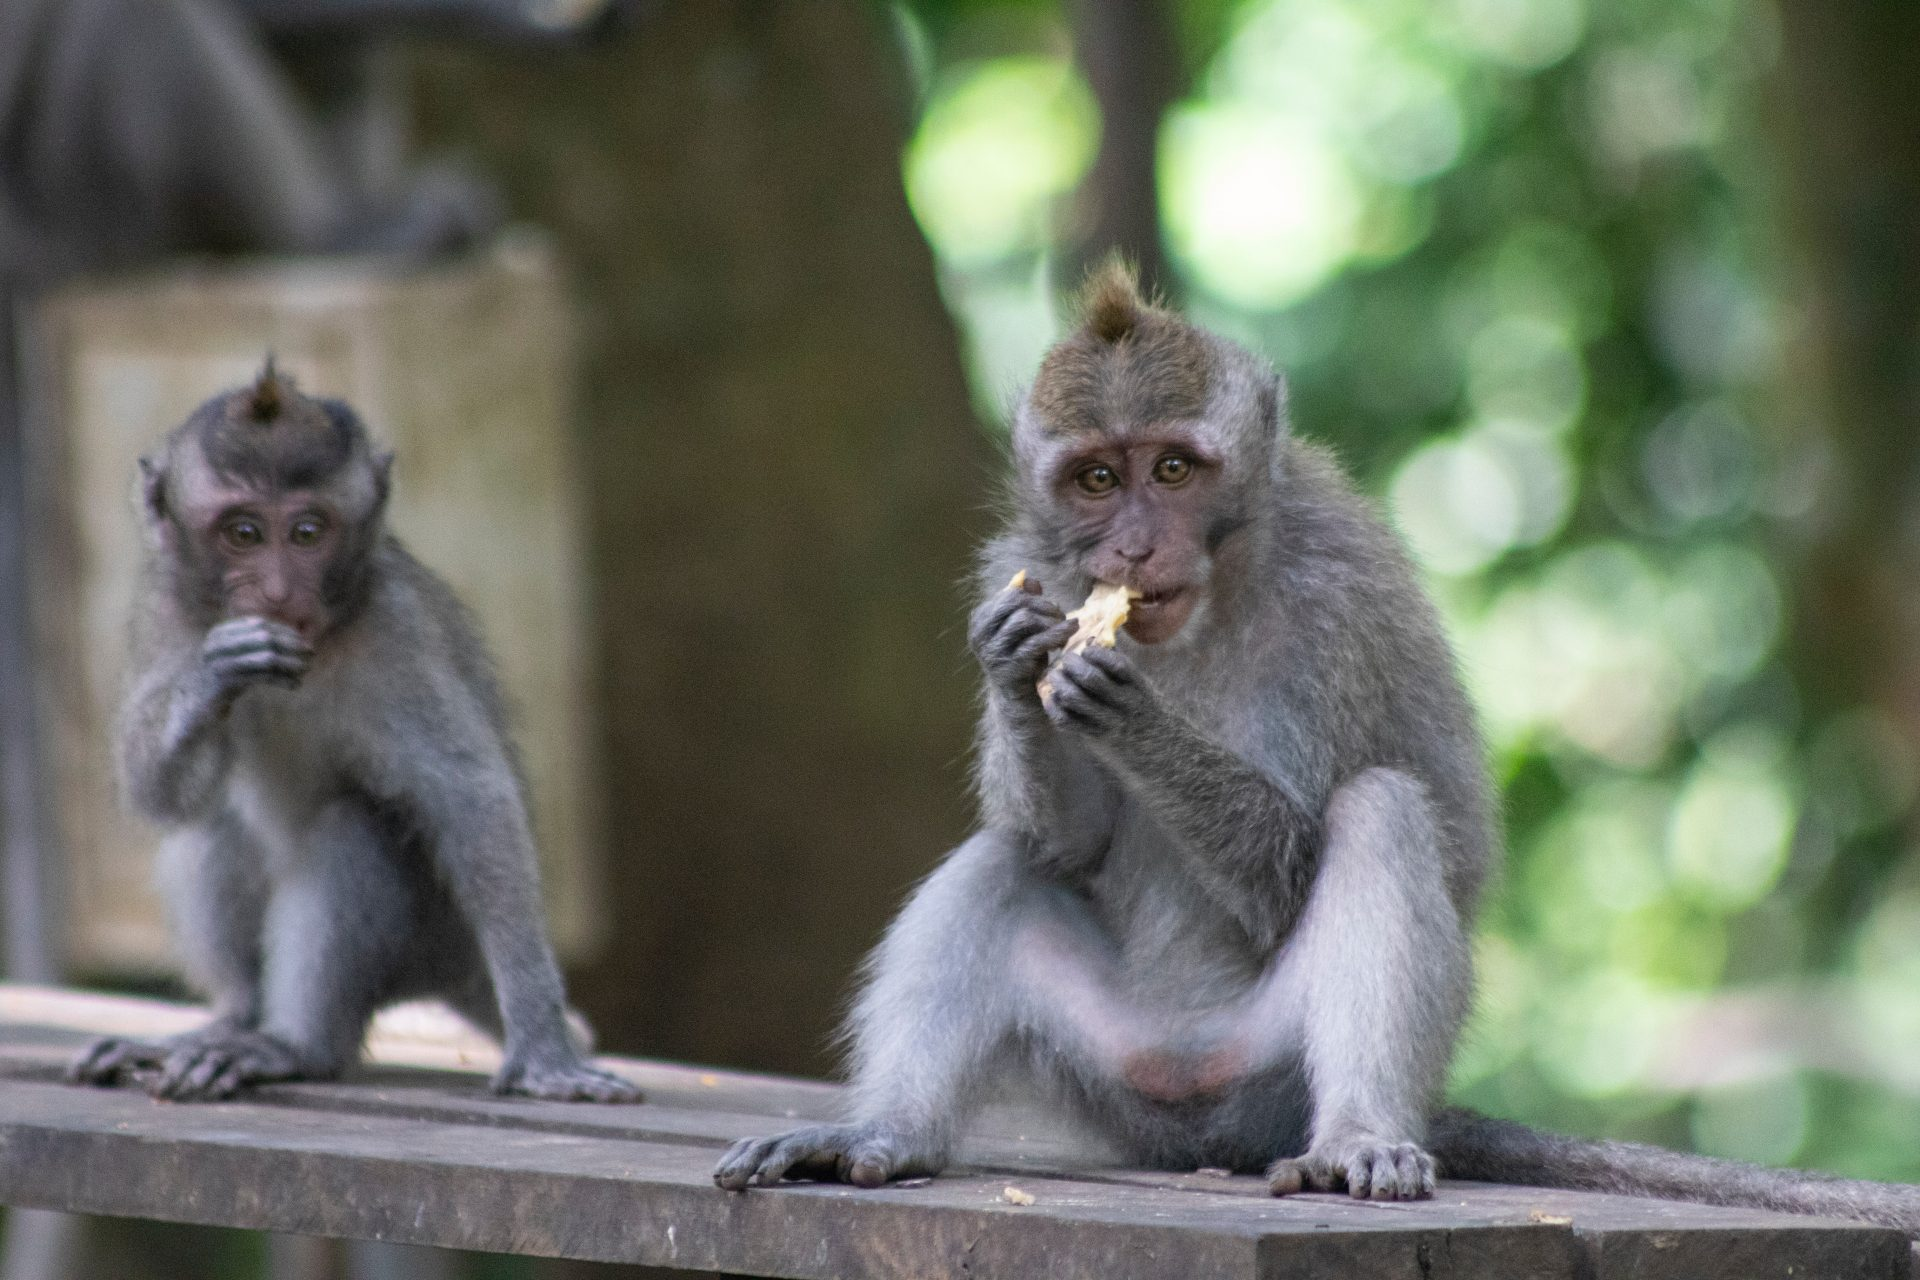 Learn English with the News – Without Tourists, Monkeys Begin Stealing from Homes in Bali